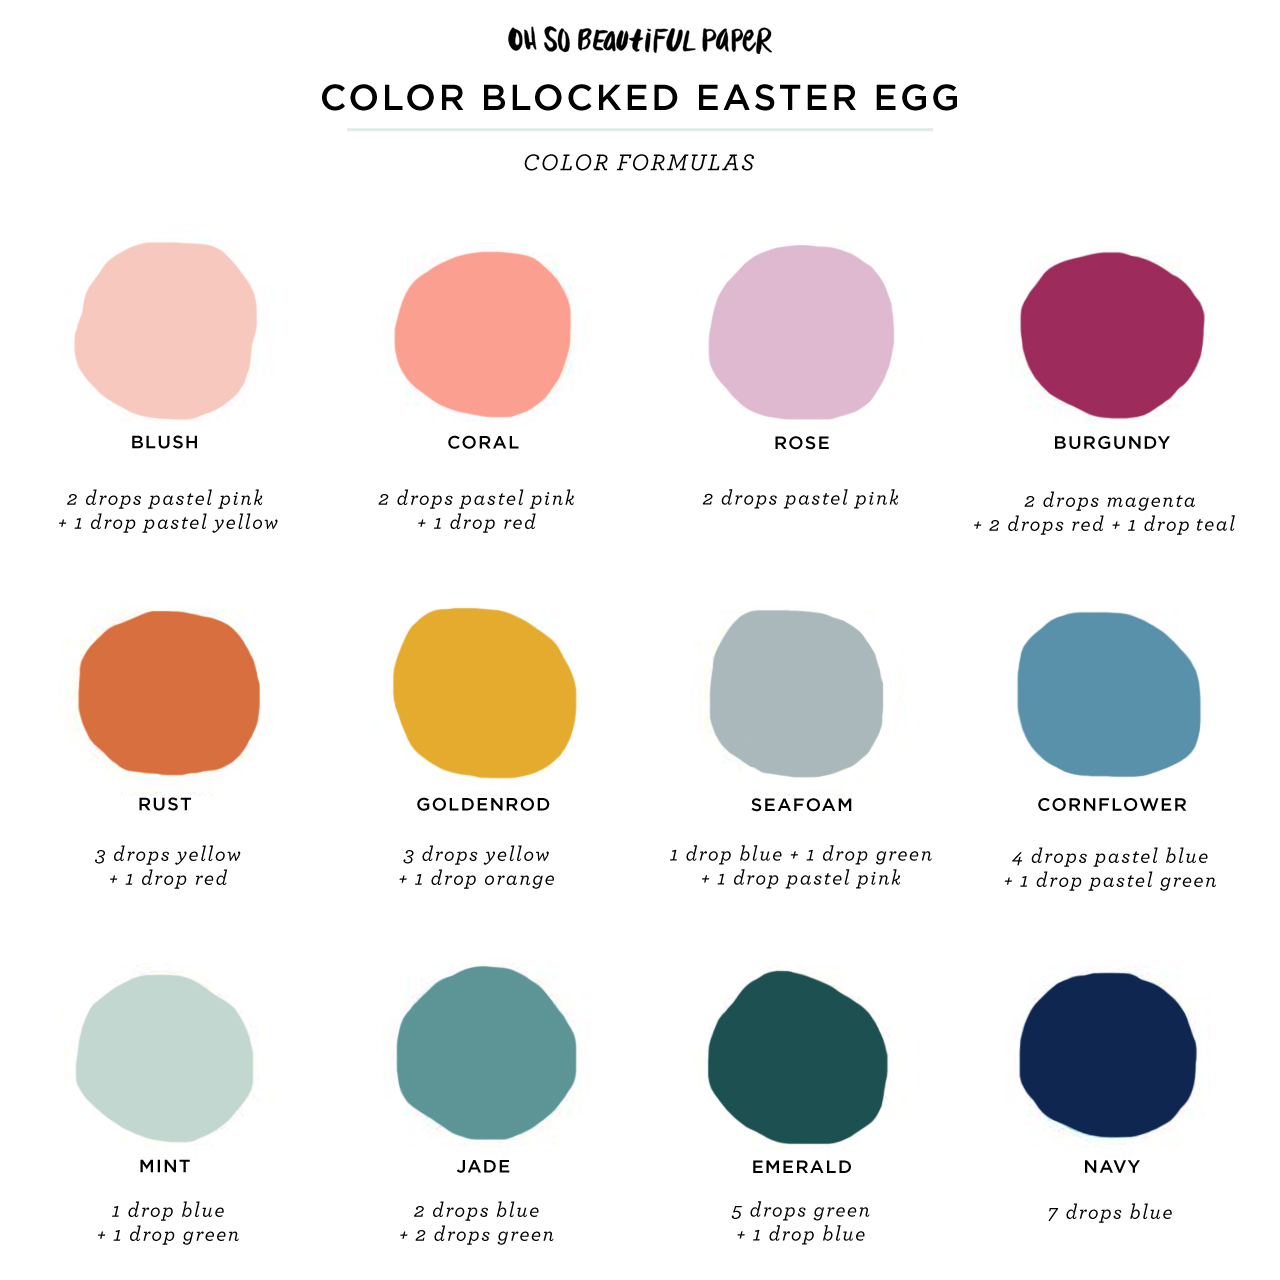 DIY Modern Color-Blocked Easter Eggs Color Formulas